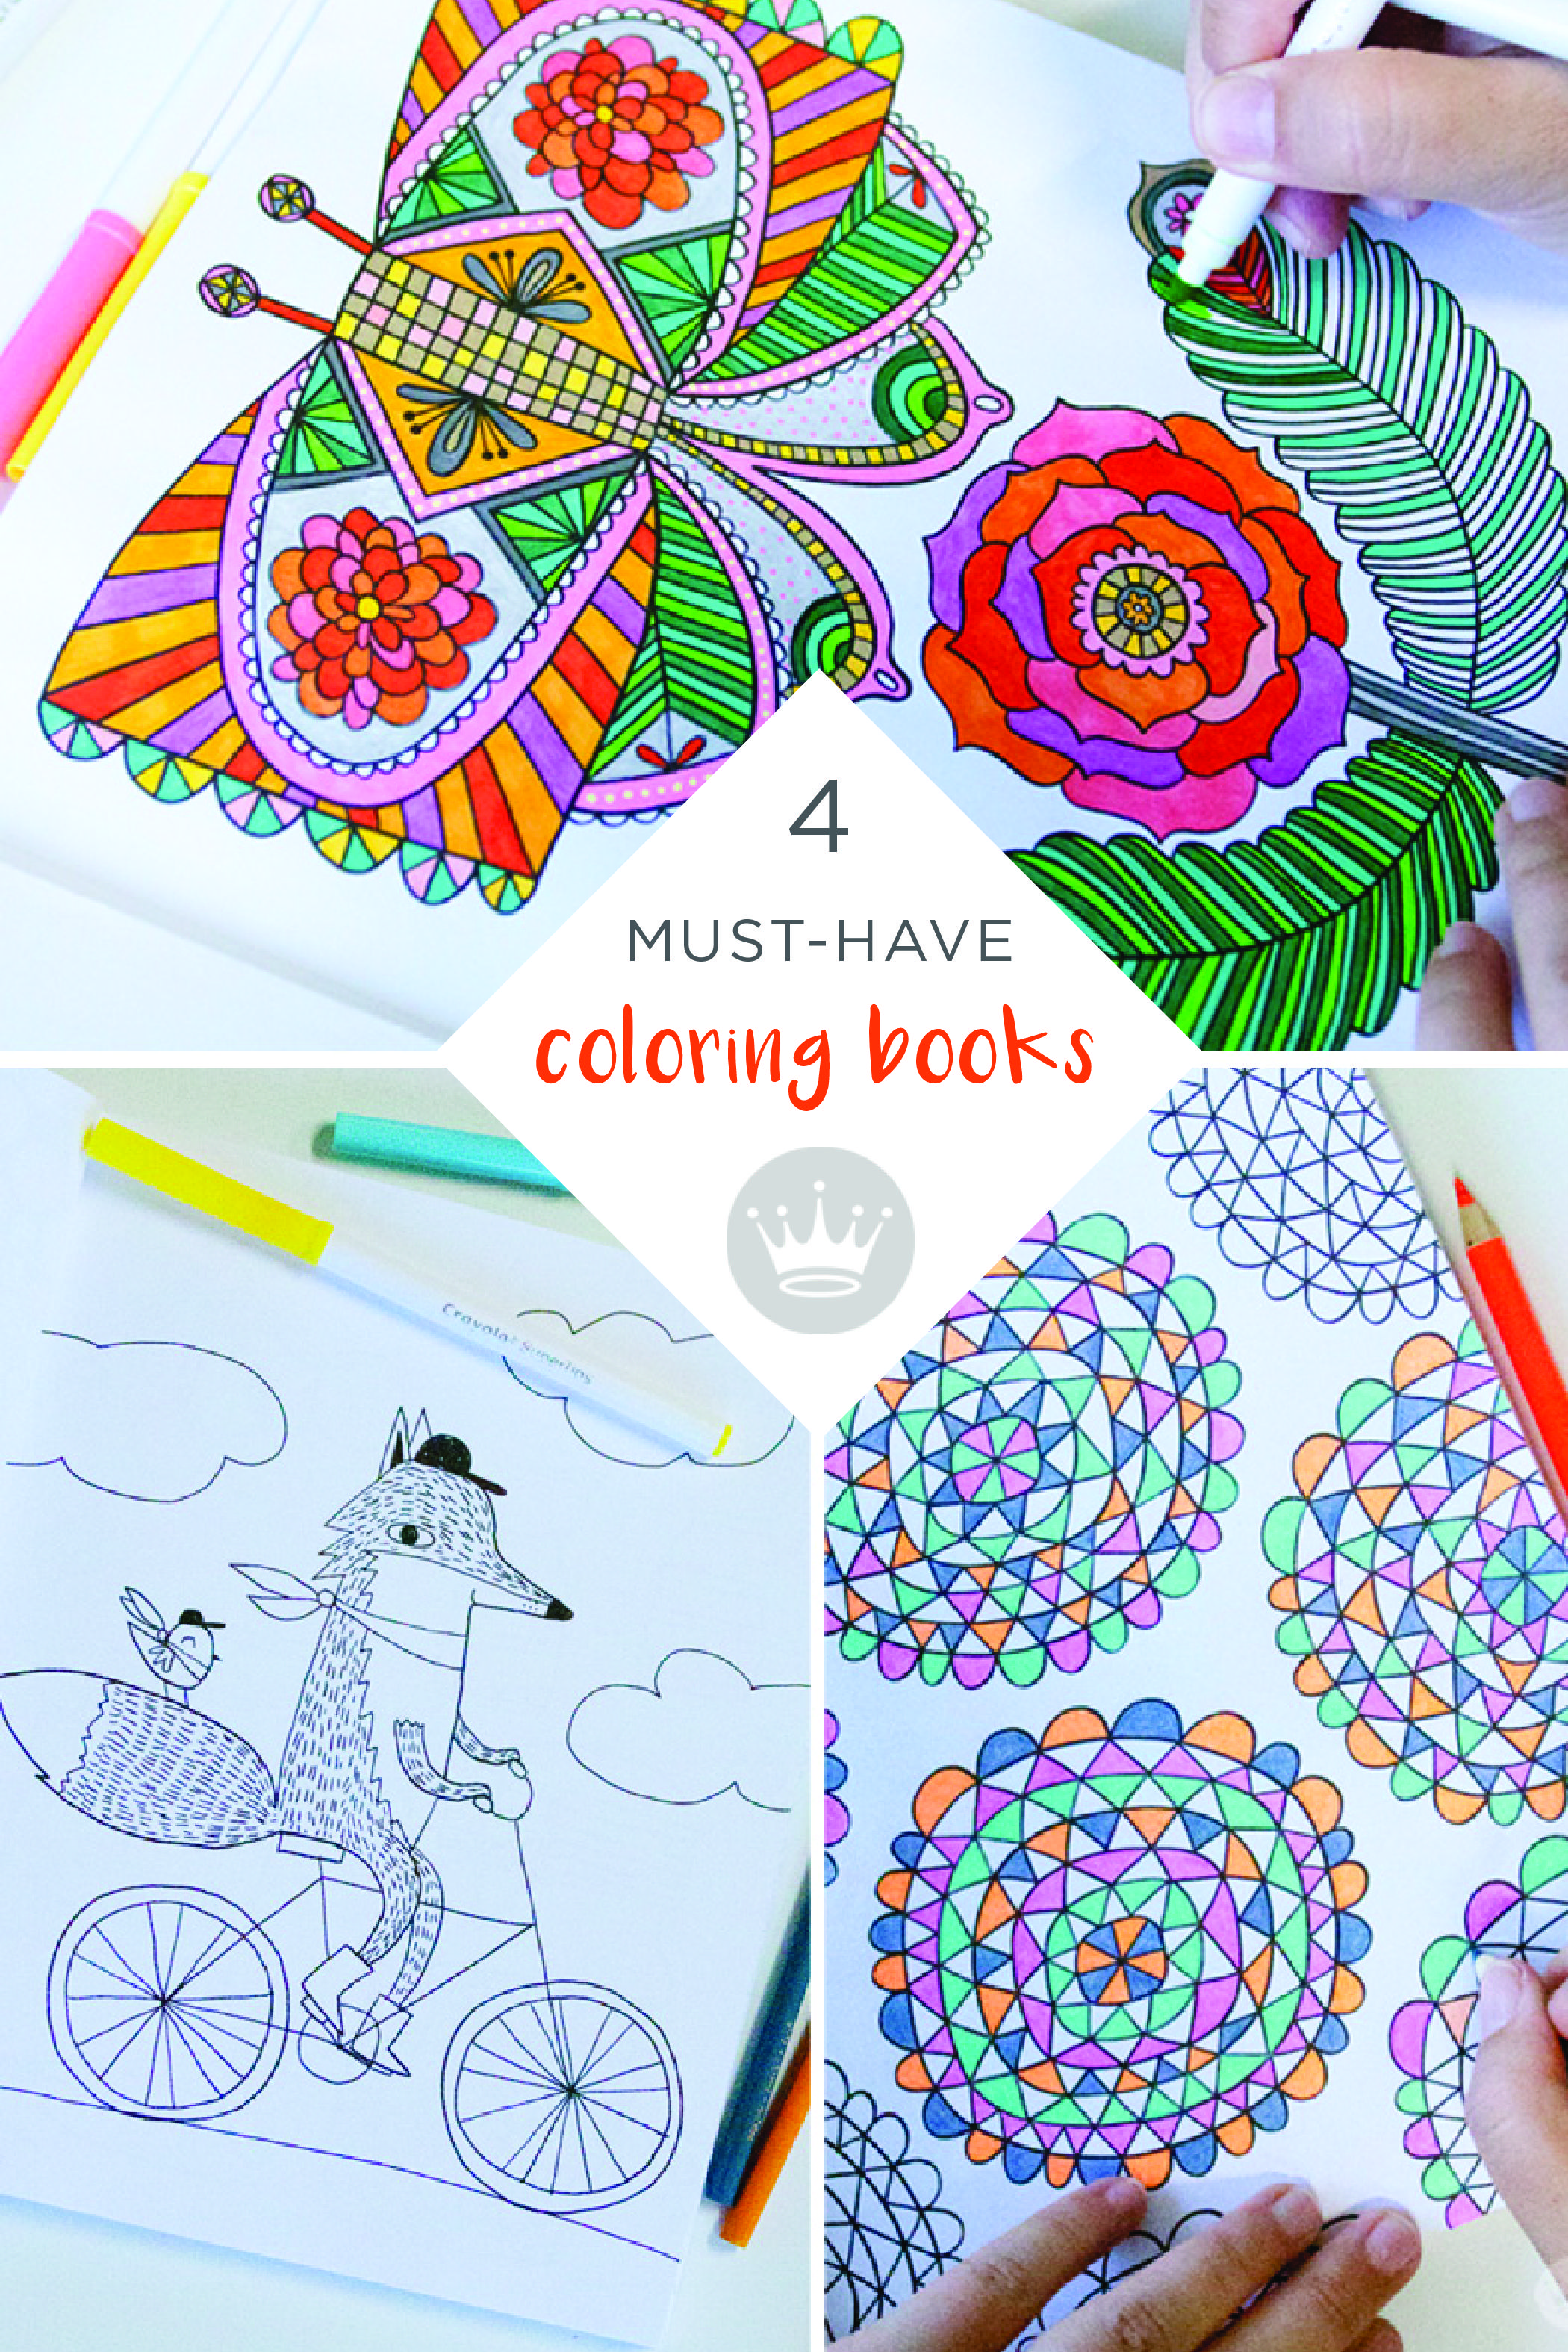 Get Creative With These Adult Coloring Books Original Art Work For Grown Ups By Hallmark Crayola